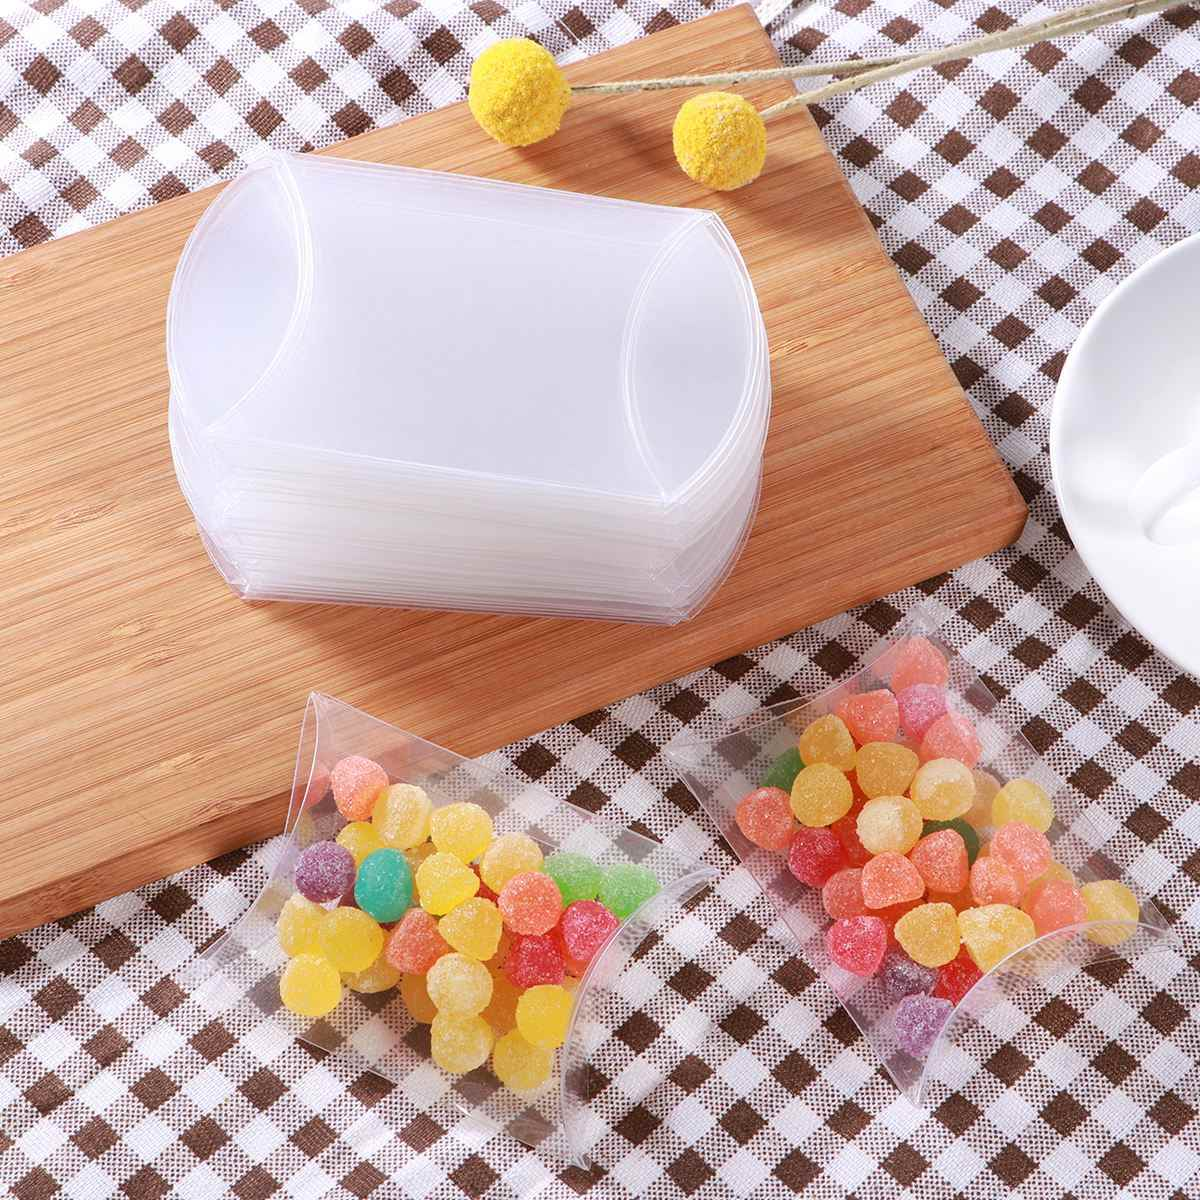 Paper Gift Box 50pcs Pillow Shape Candy Box Small Lightweight Creative PVC Transparent Storage Case Candy Box Container